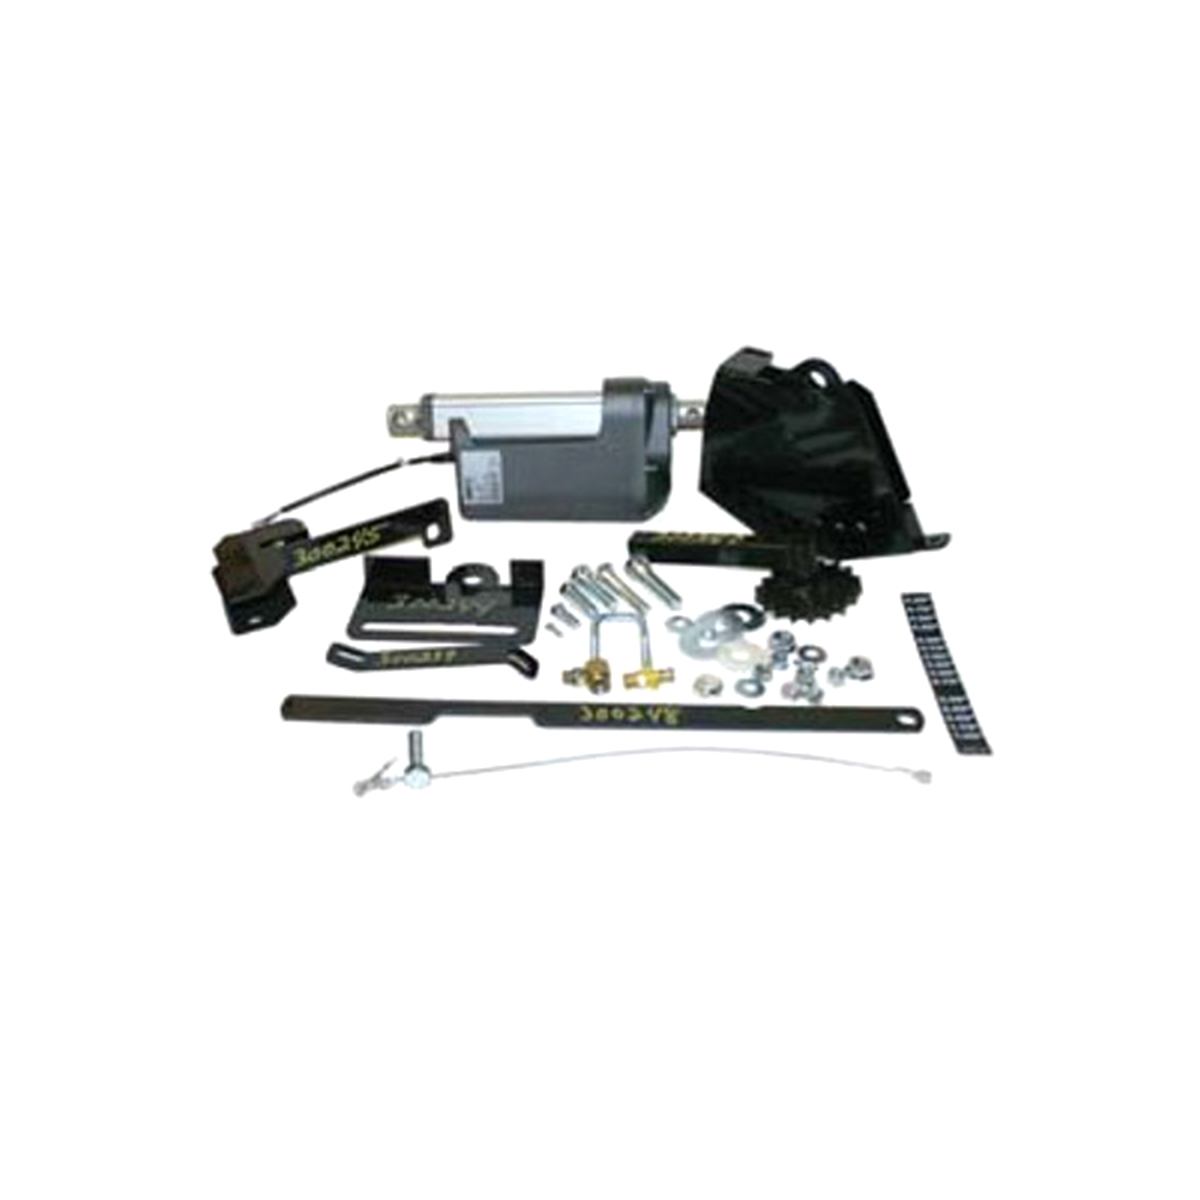 300407 Dixie Chopper Silver Eagle Electric Deck Lift Kit